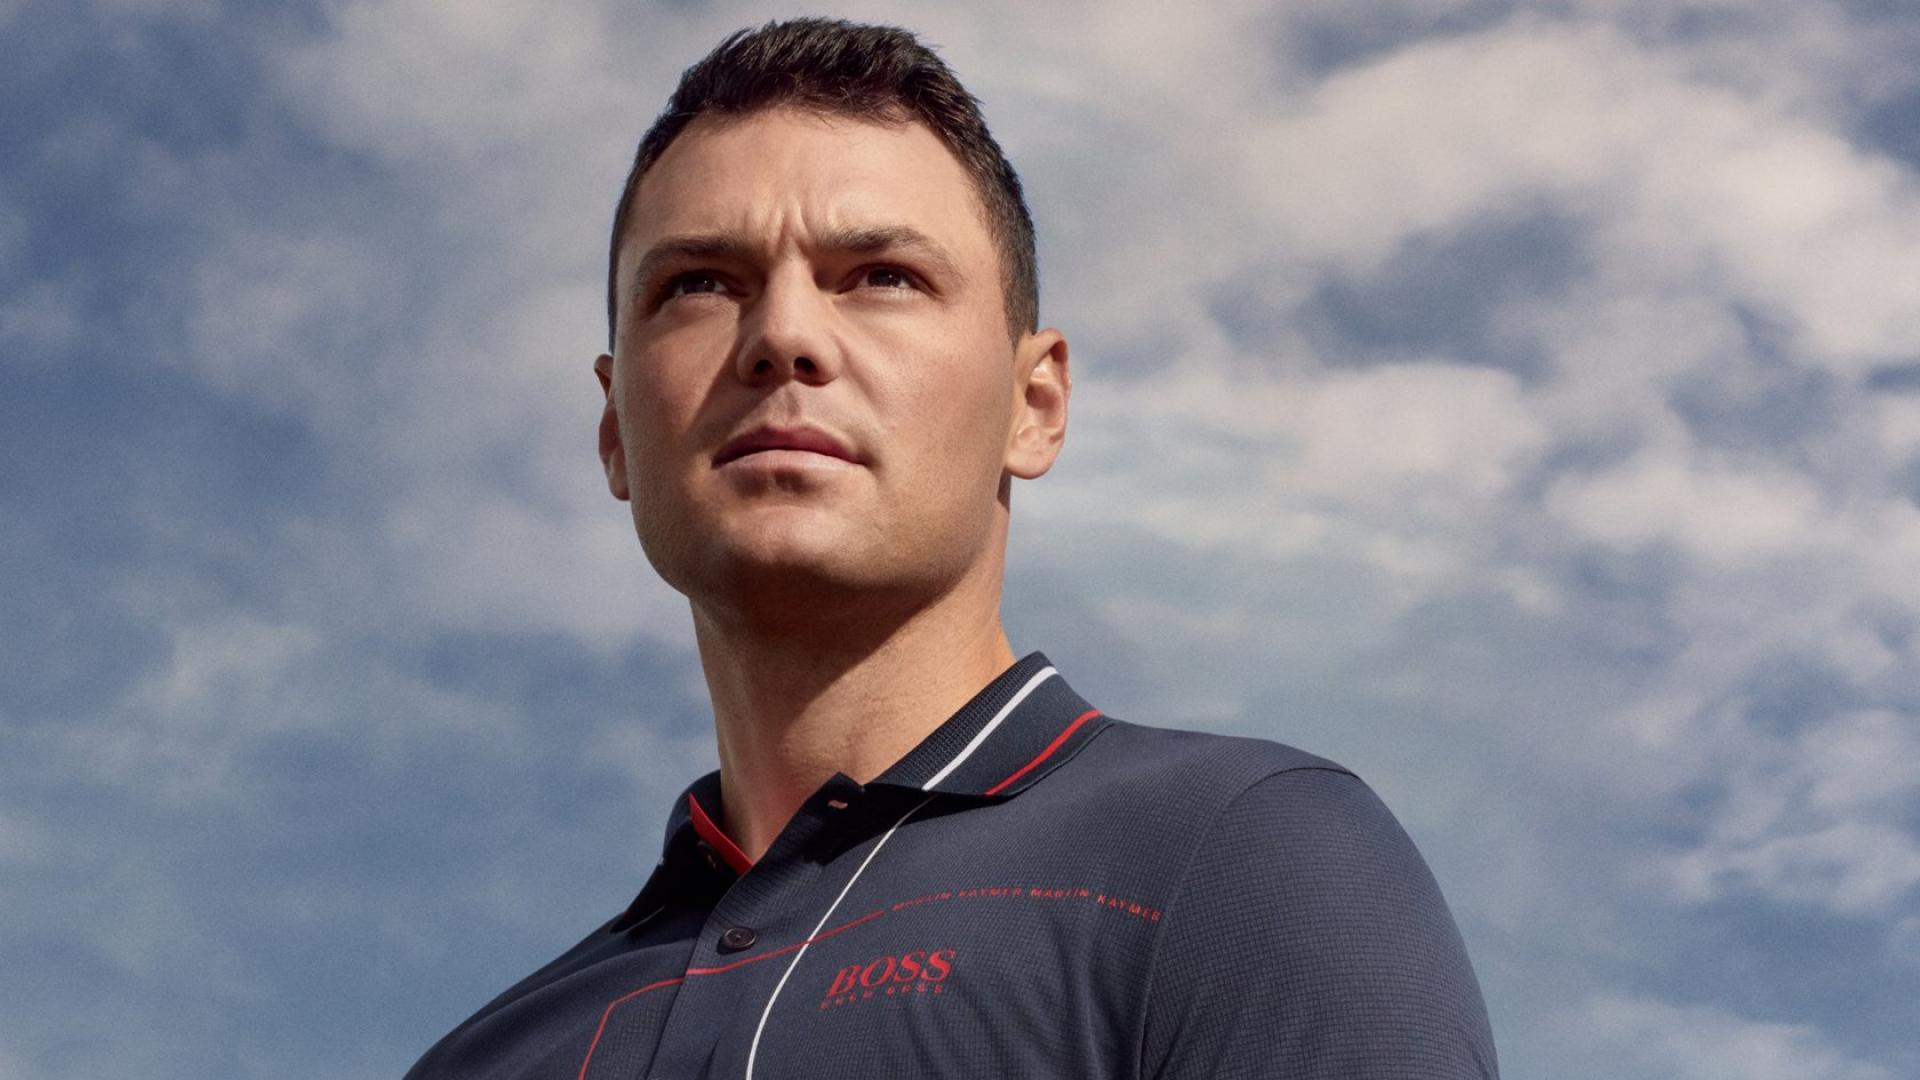 Martin Kaymer BOSS The Open 2019